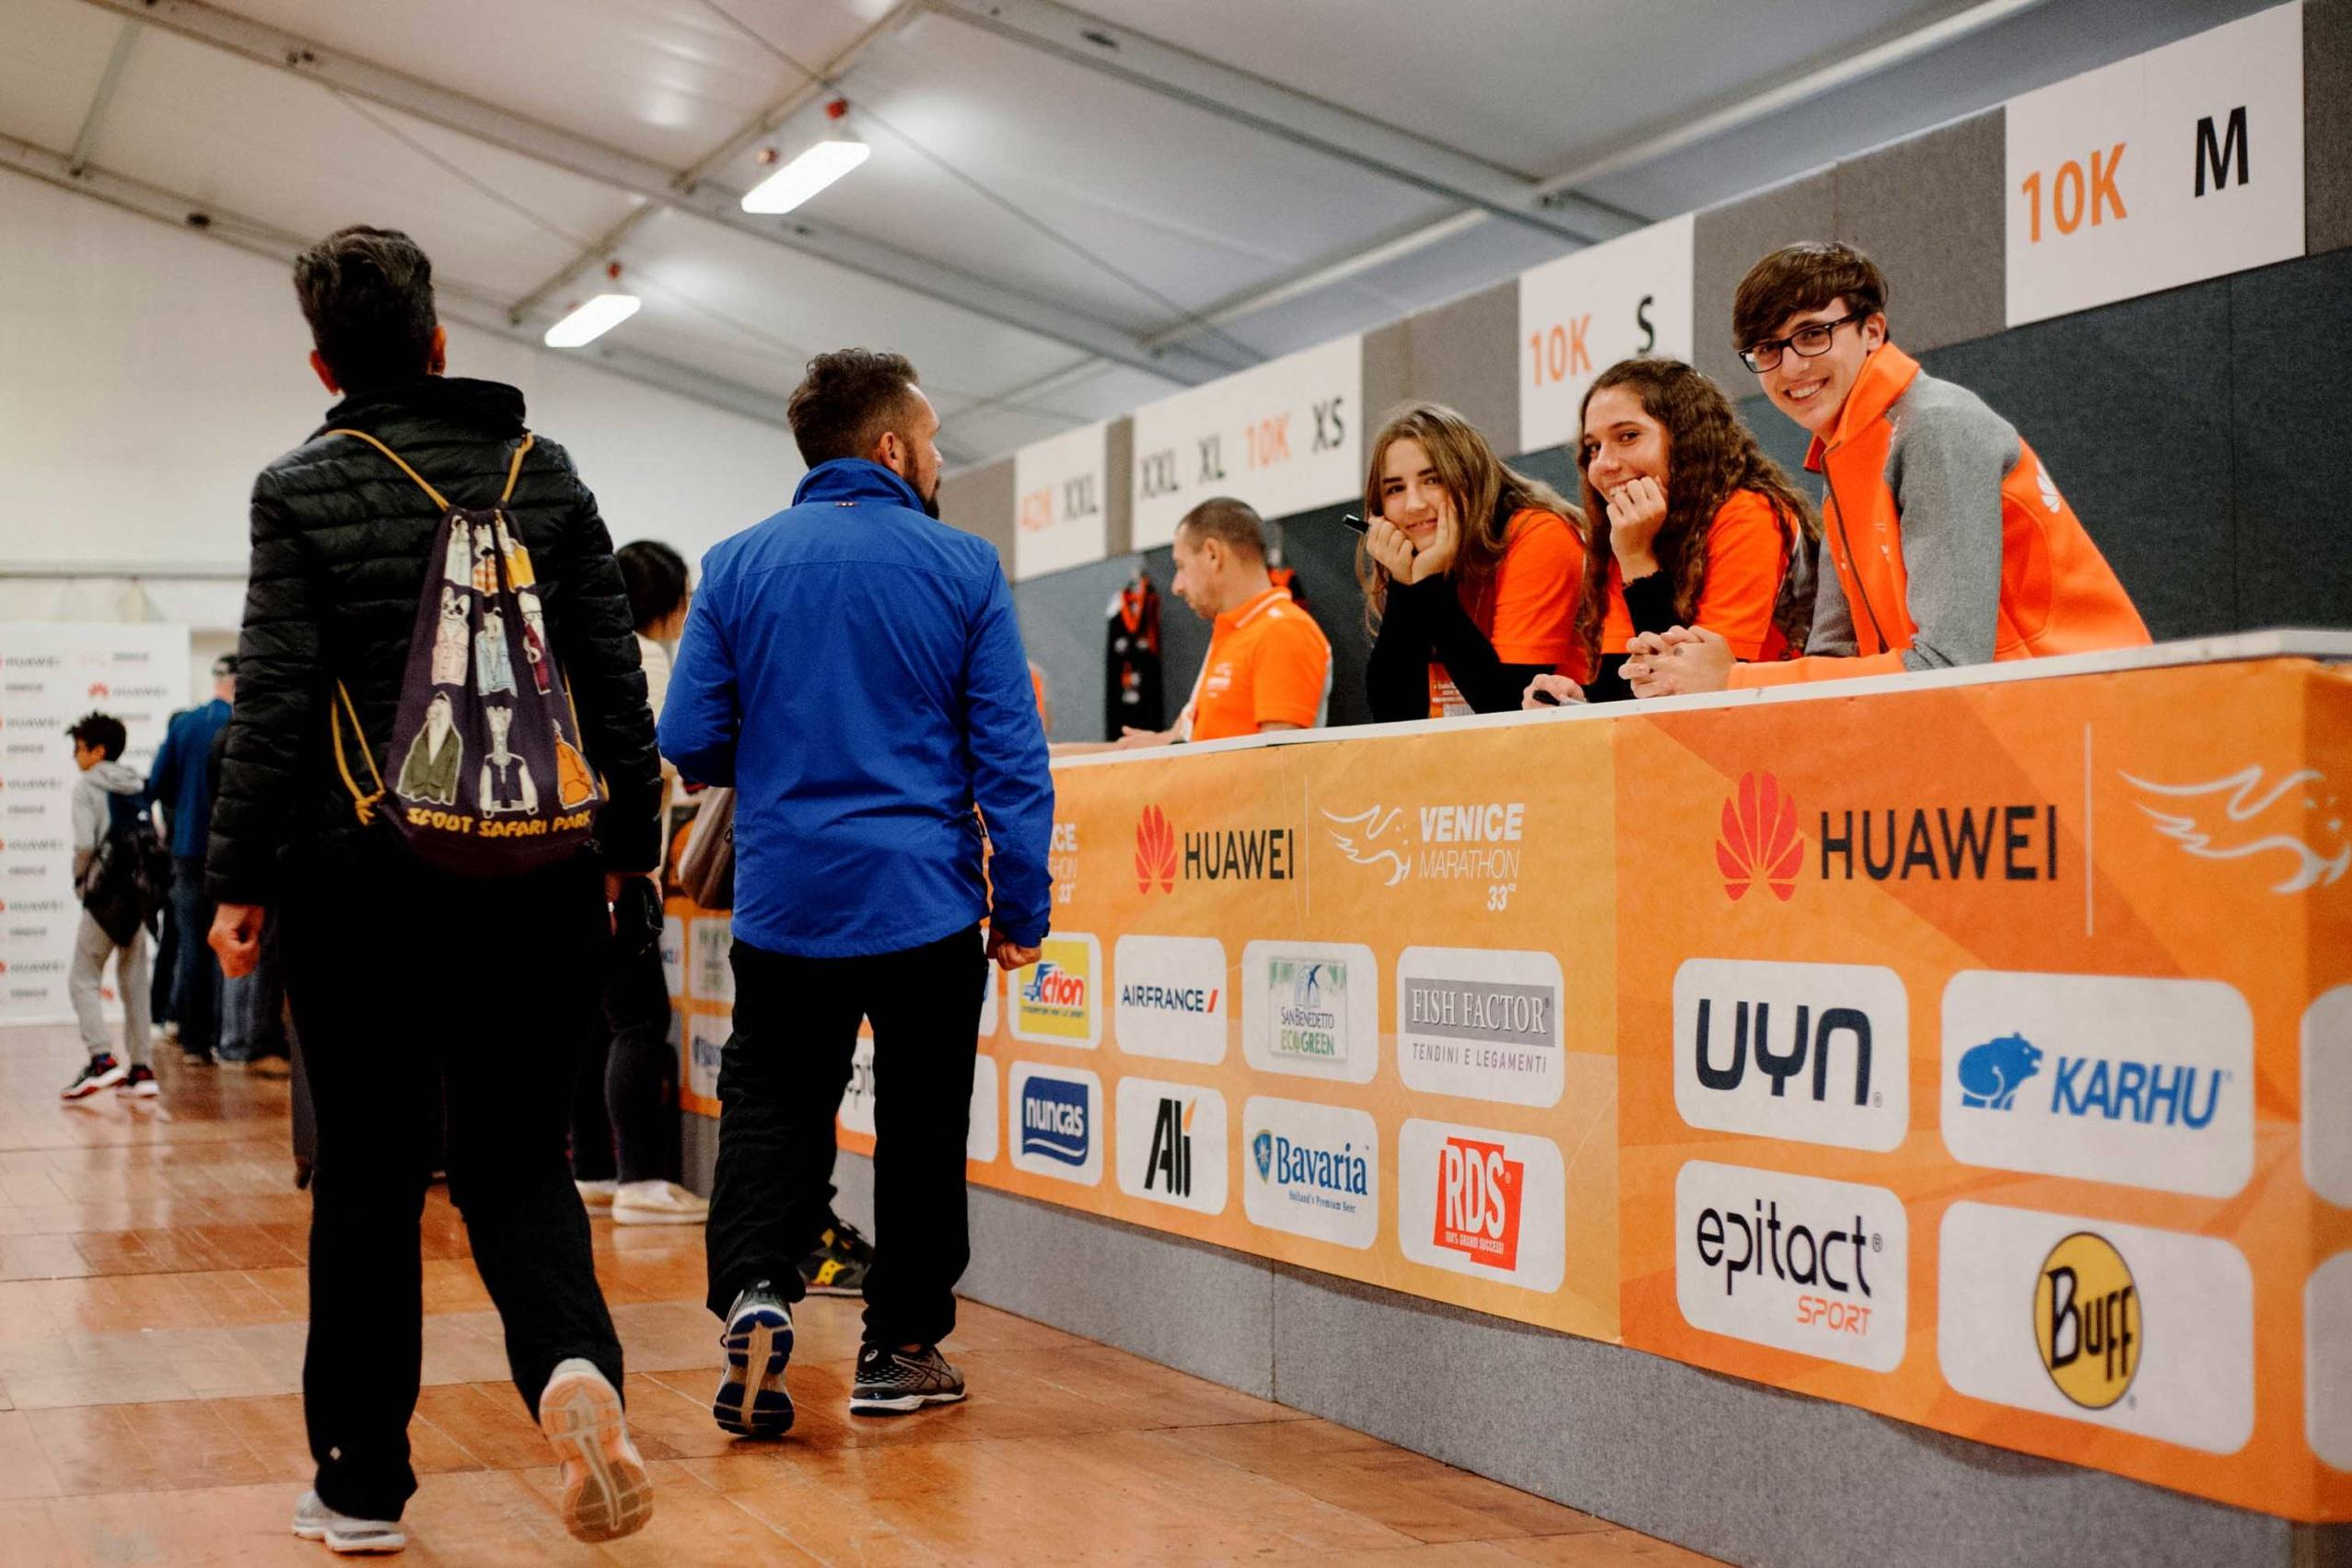 Staff lfm group al Huawei Marathons